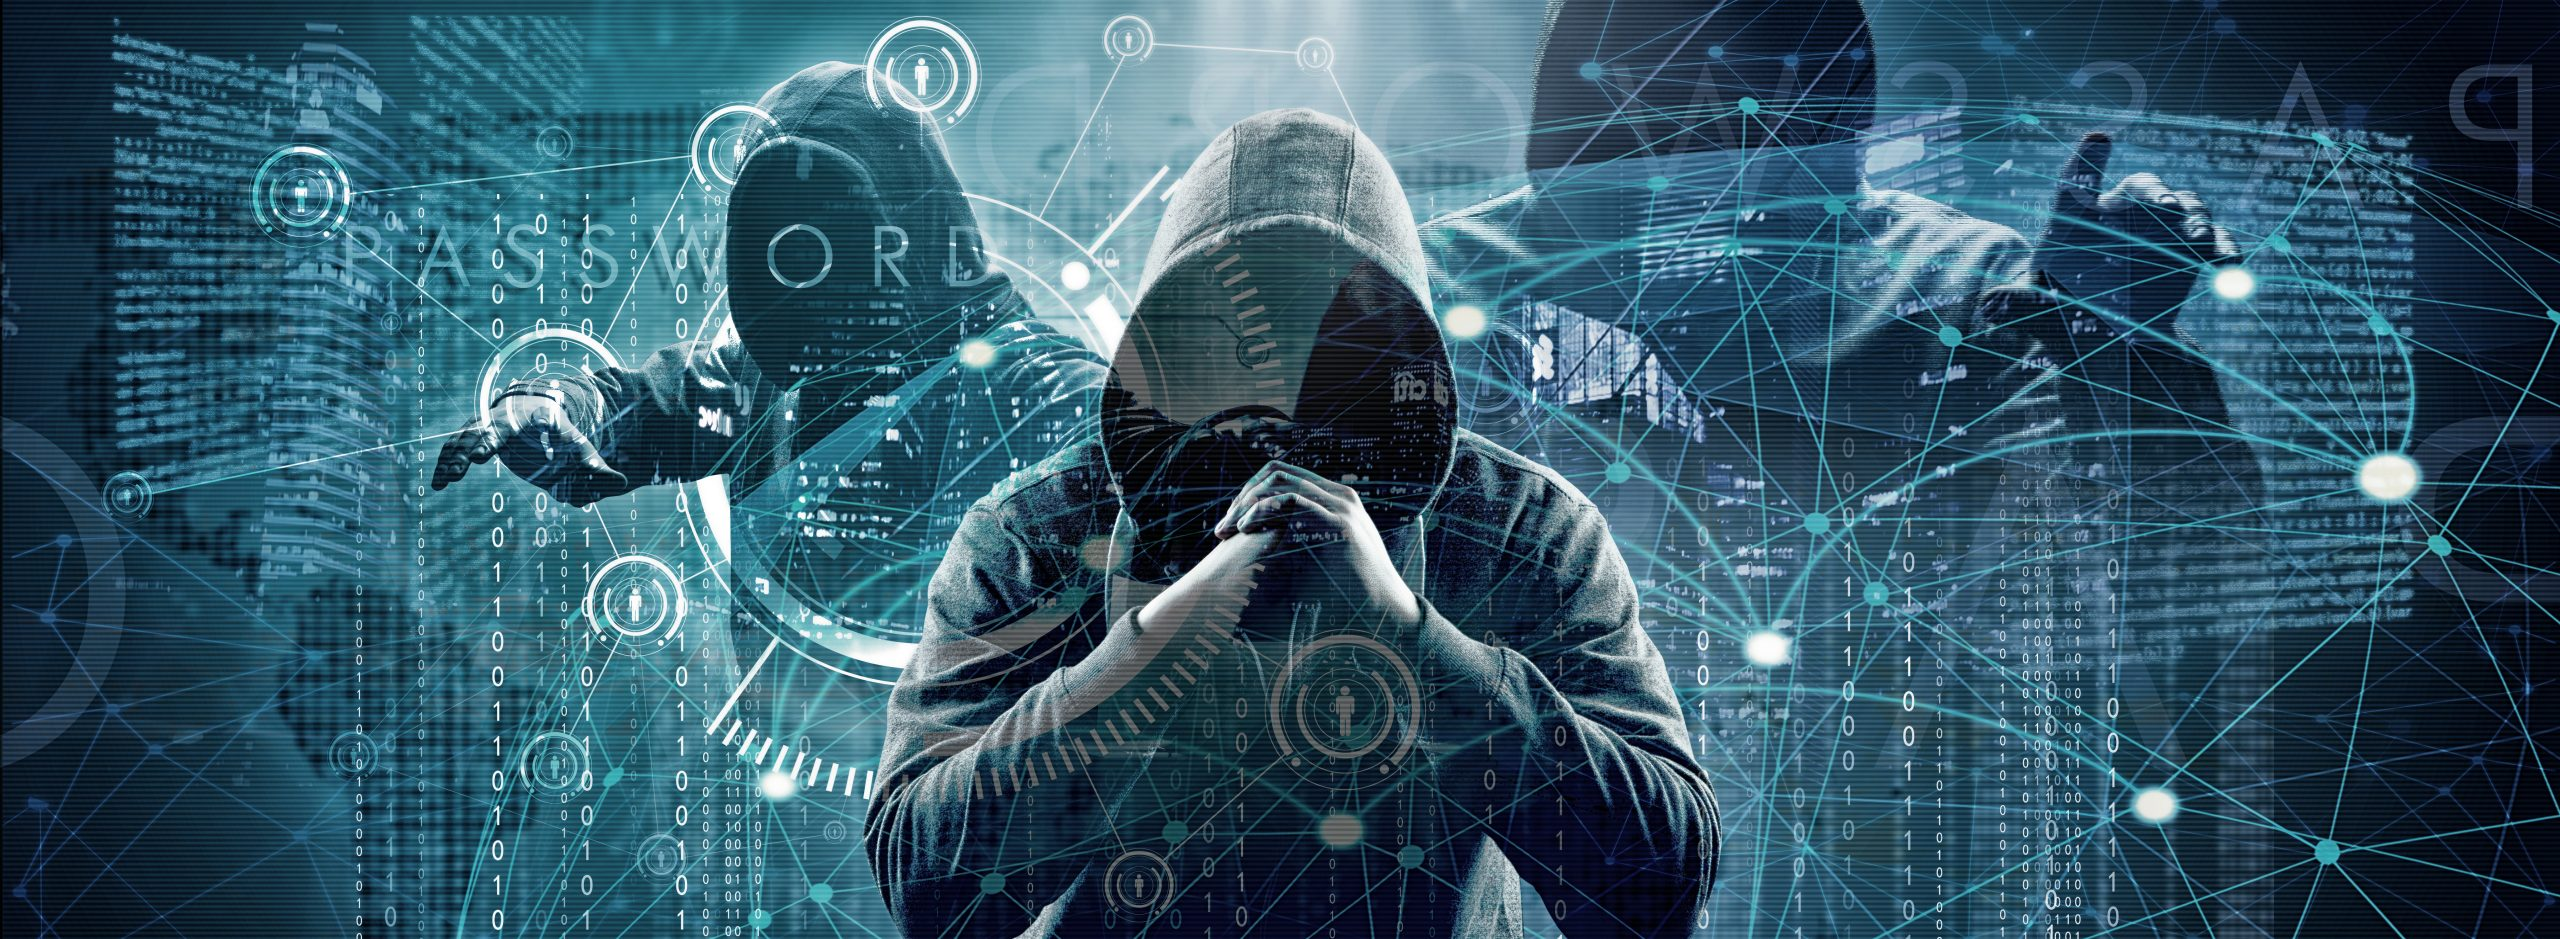 Account Takeover Hacking And What You Can Do About It